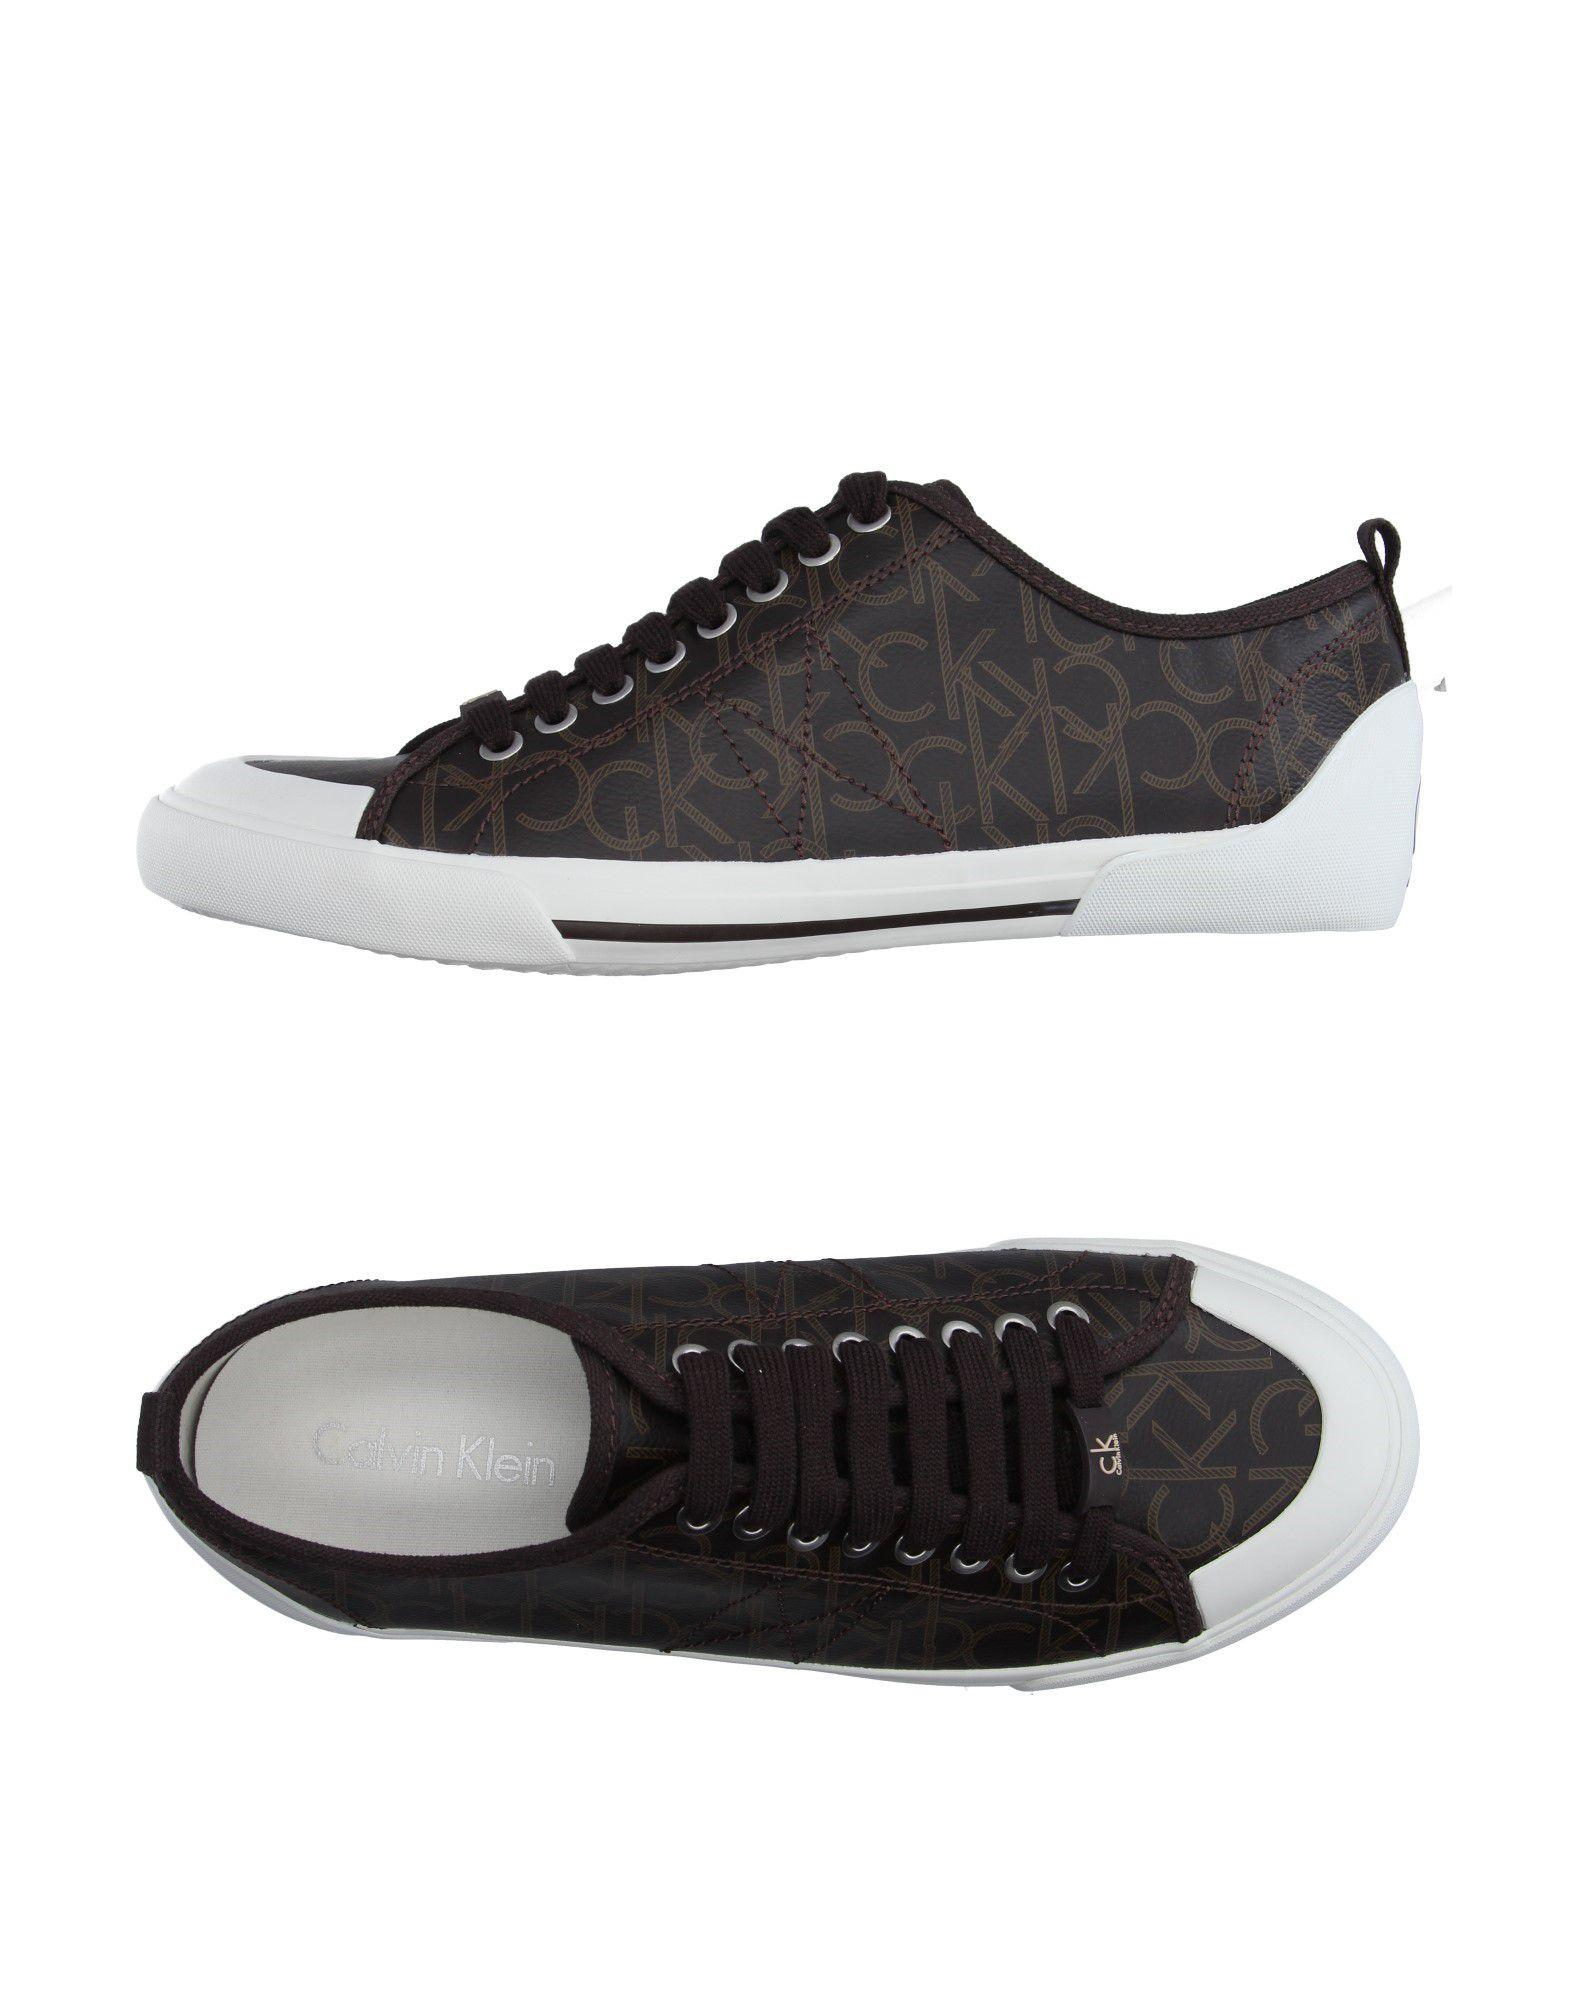 calvin klein jeans low tops trainers in brown for men lyst. Black Bedroom Furniture Sets. Home Design Ideas